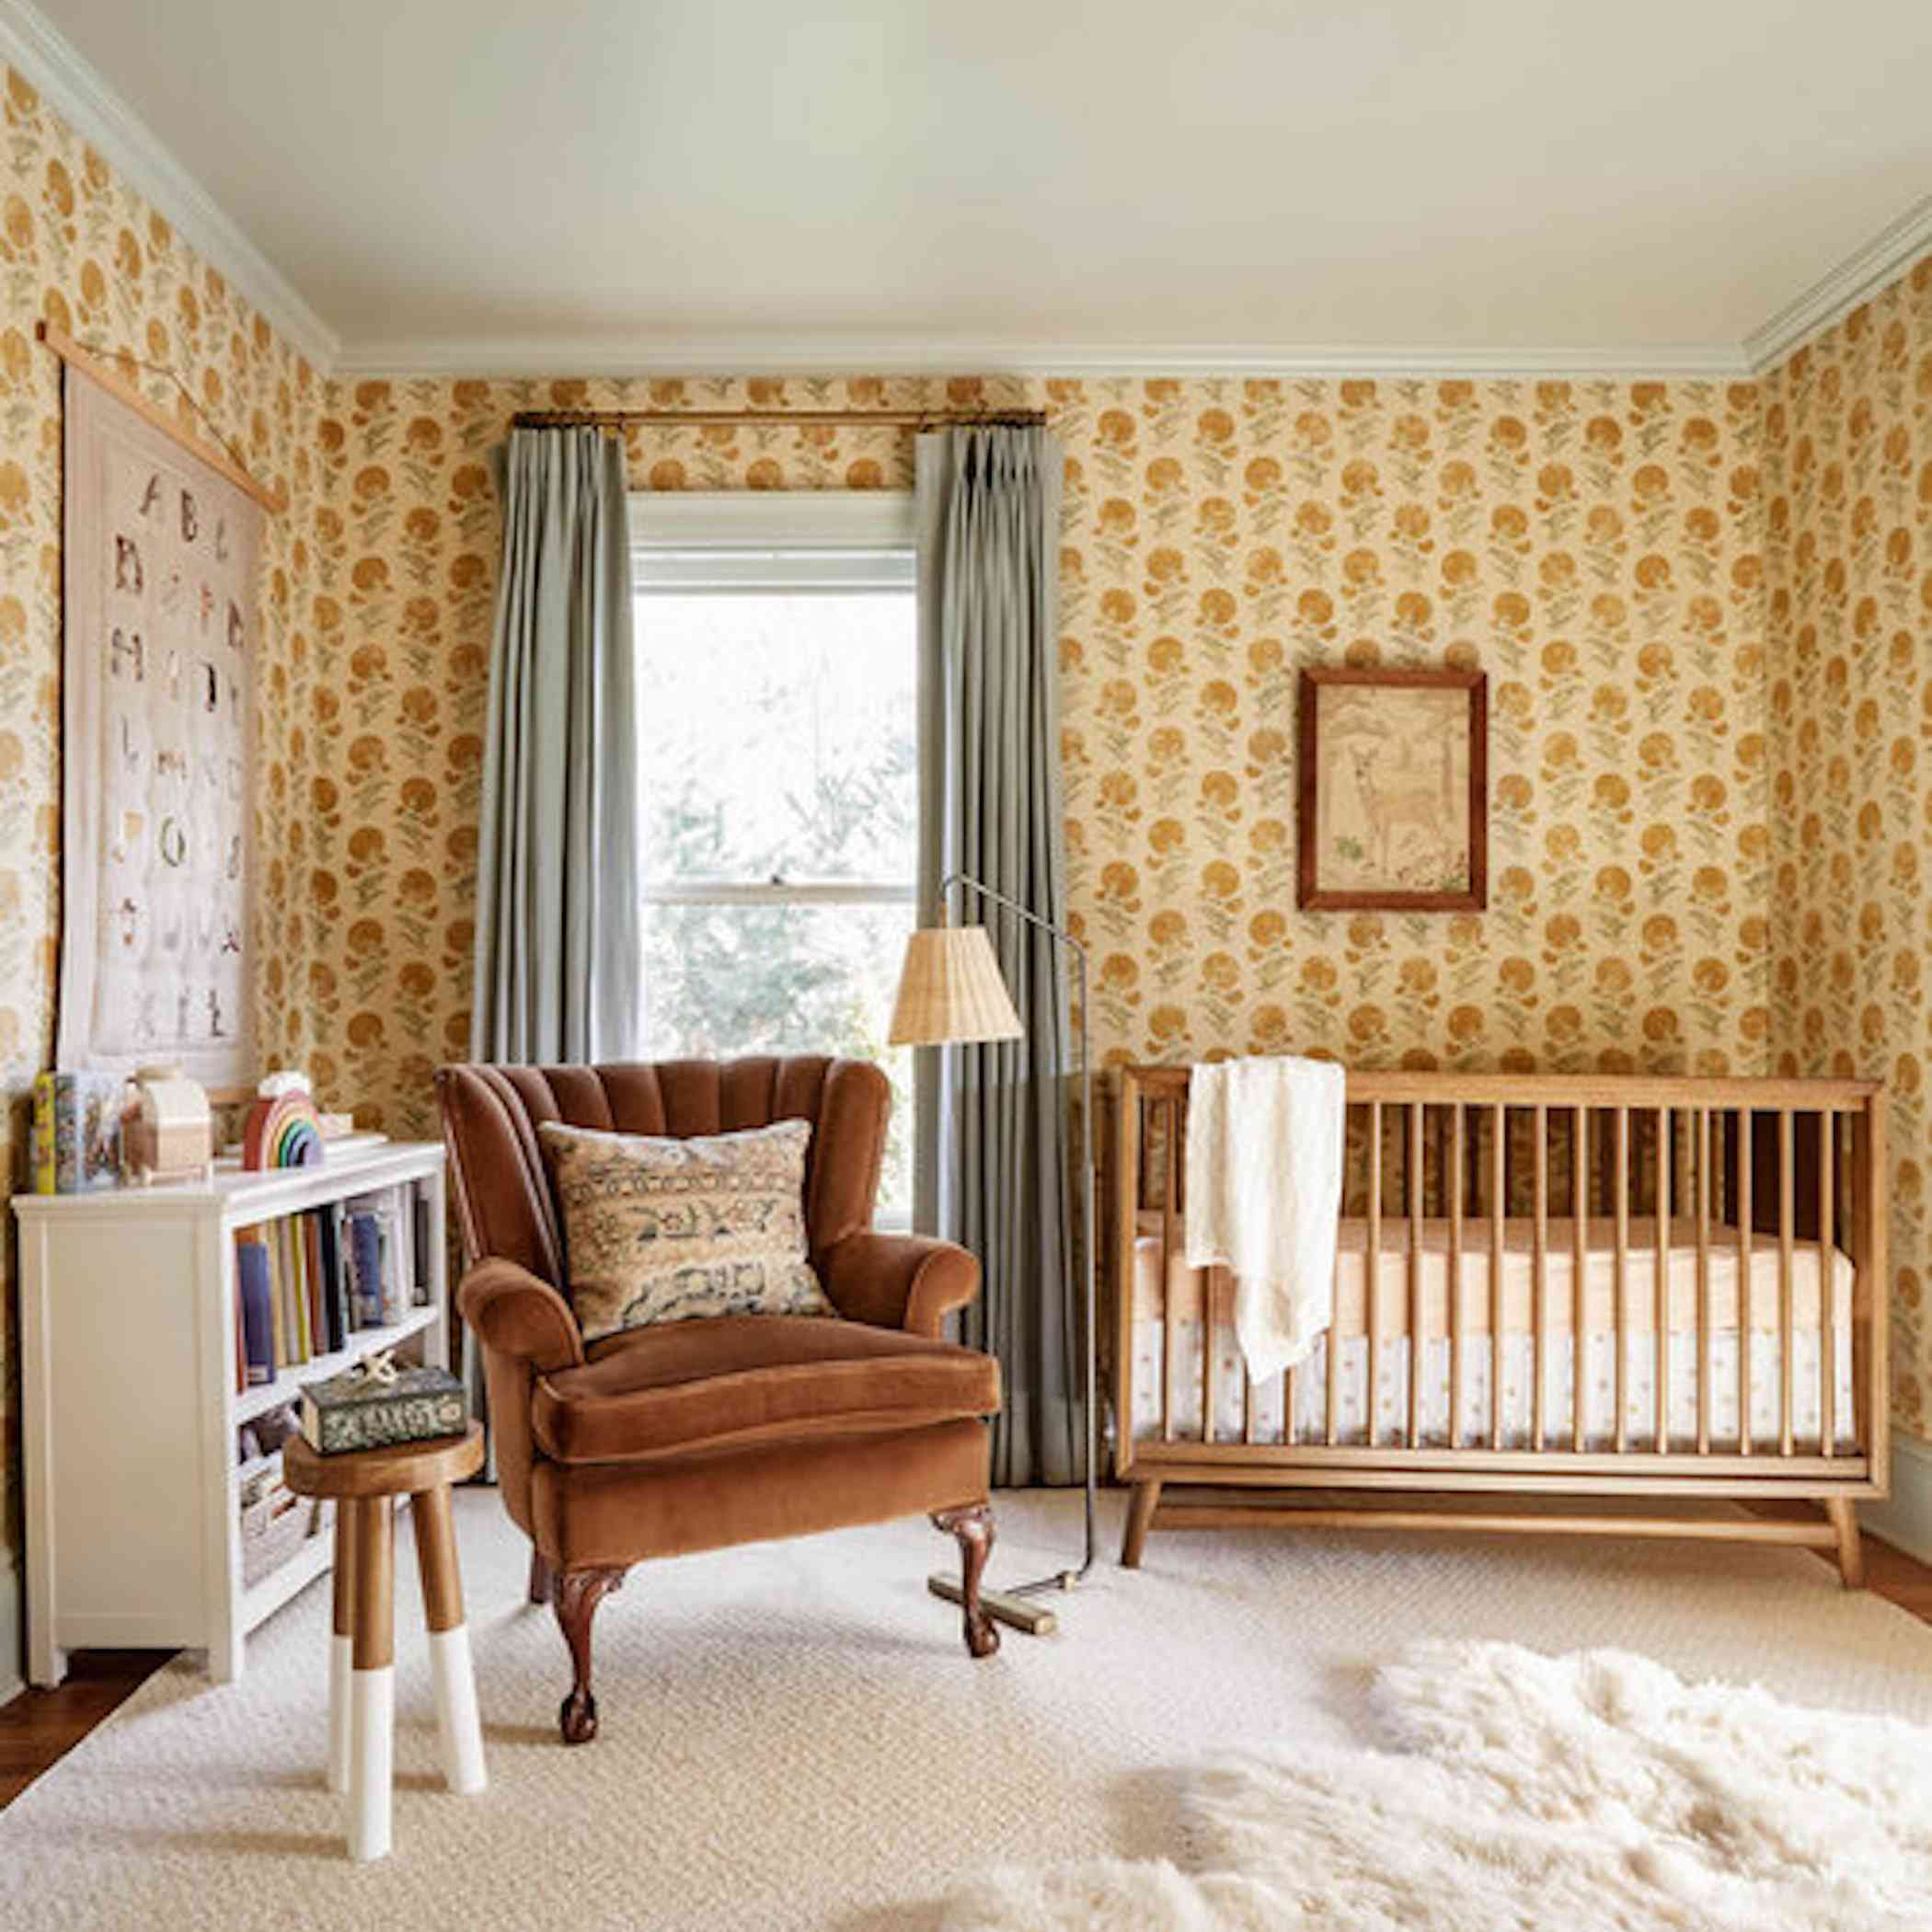 Vintage inspired nursery with yellow floral wallpaper.